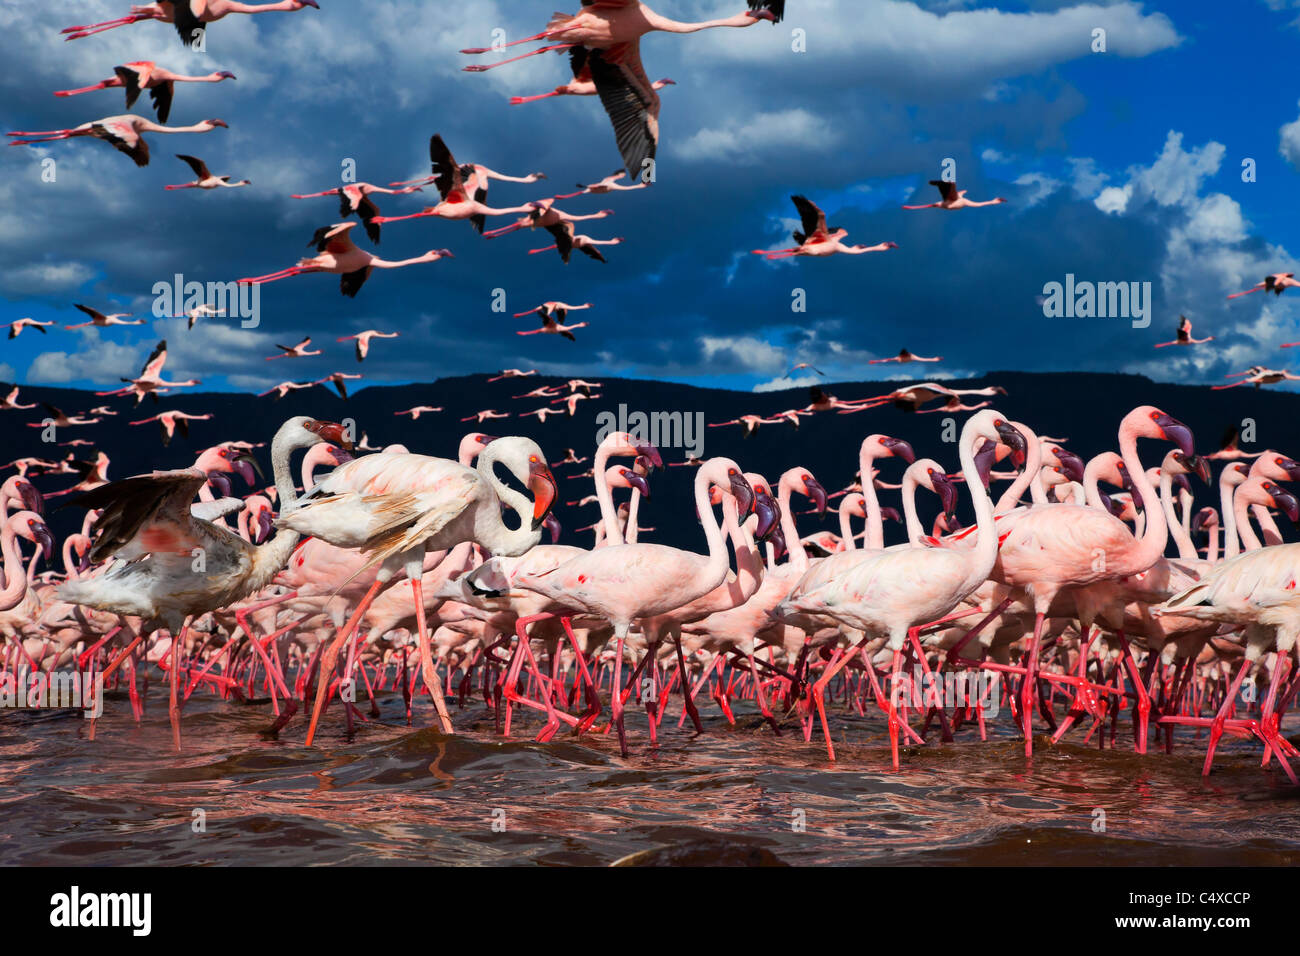 Flamant nain (Phoenicopterus minor) au lac Bogoria.Kenya Photo Stock